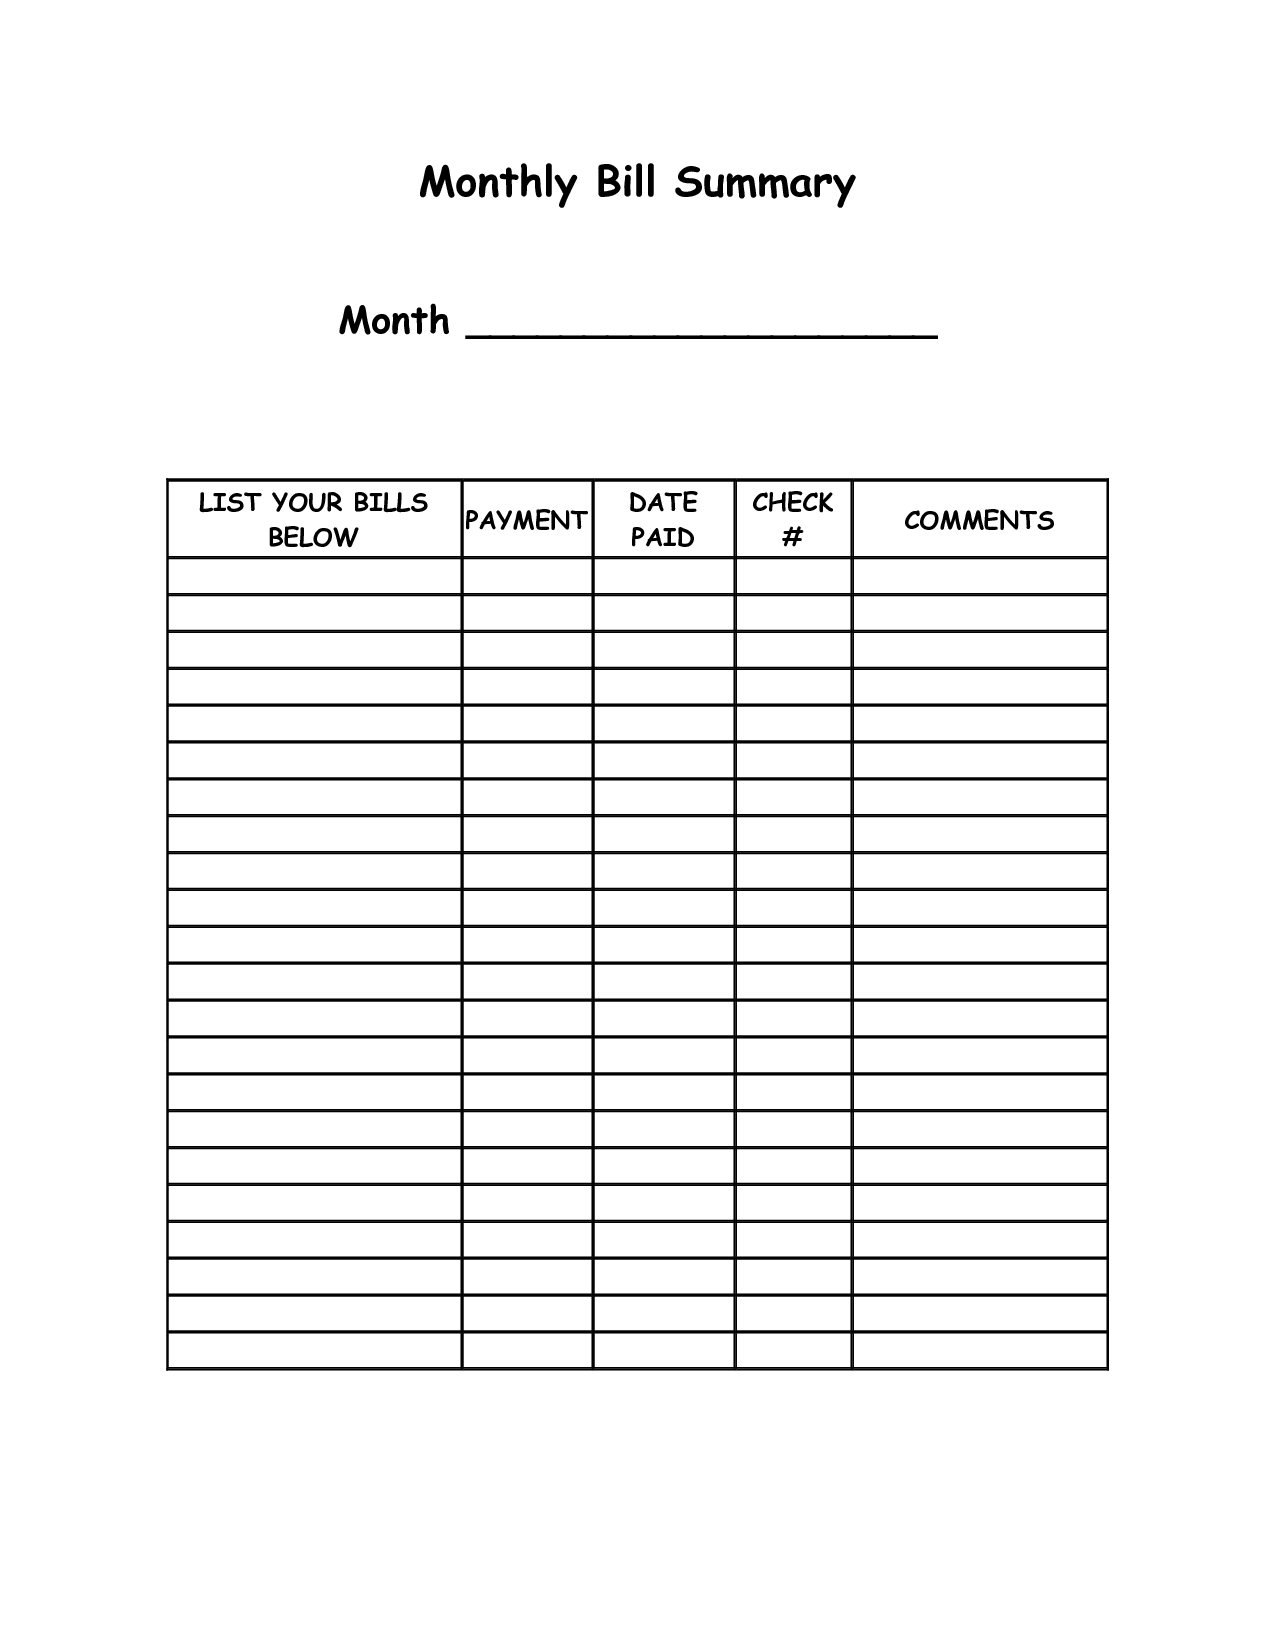 How To Make A Spreadsheet For Monthly Bills_25